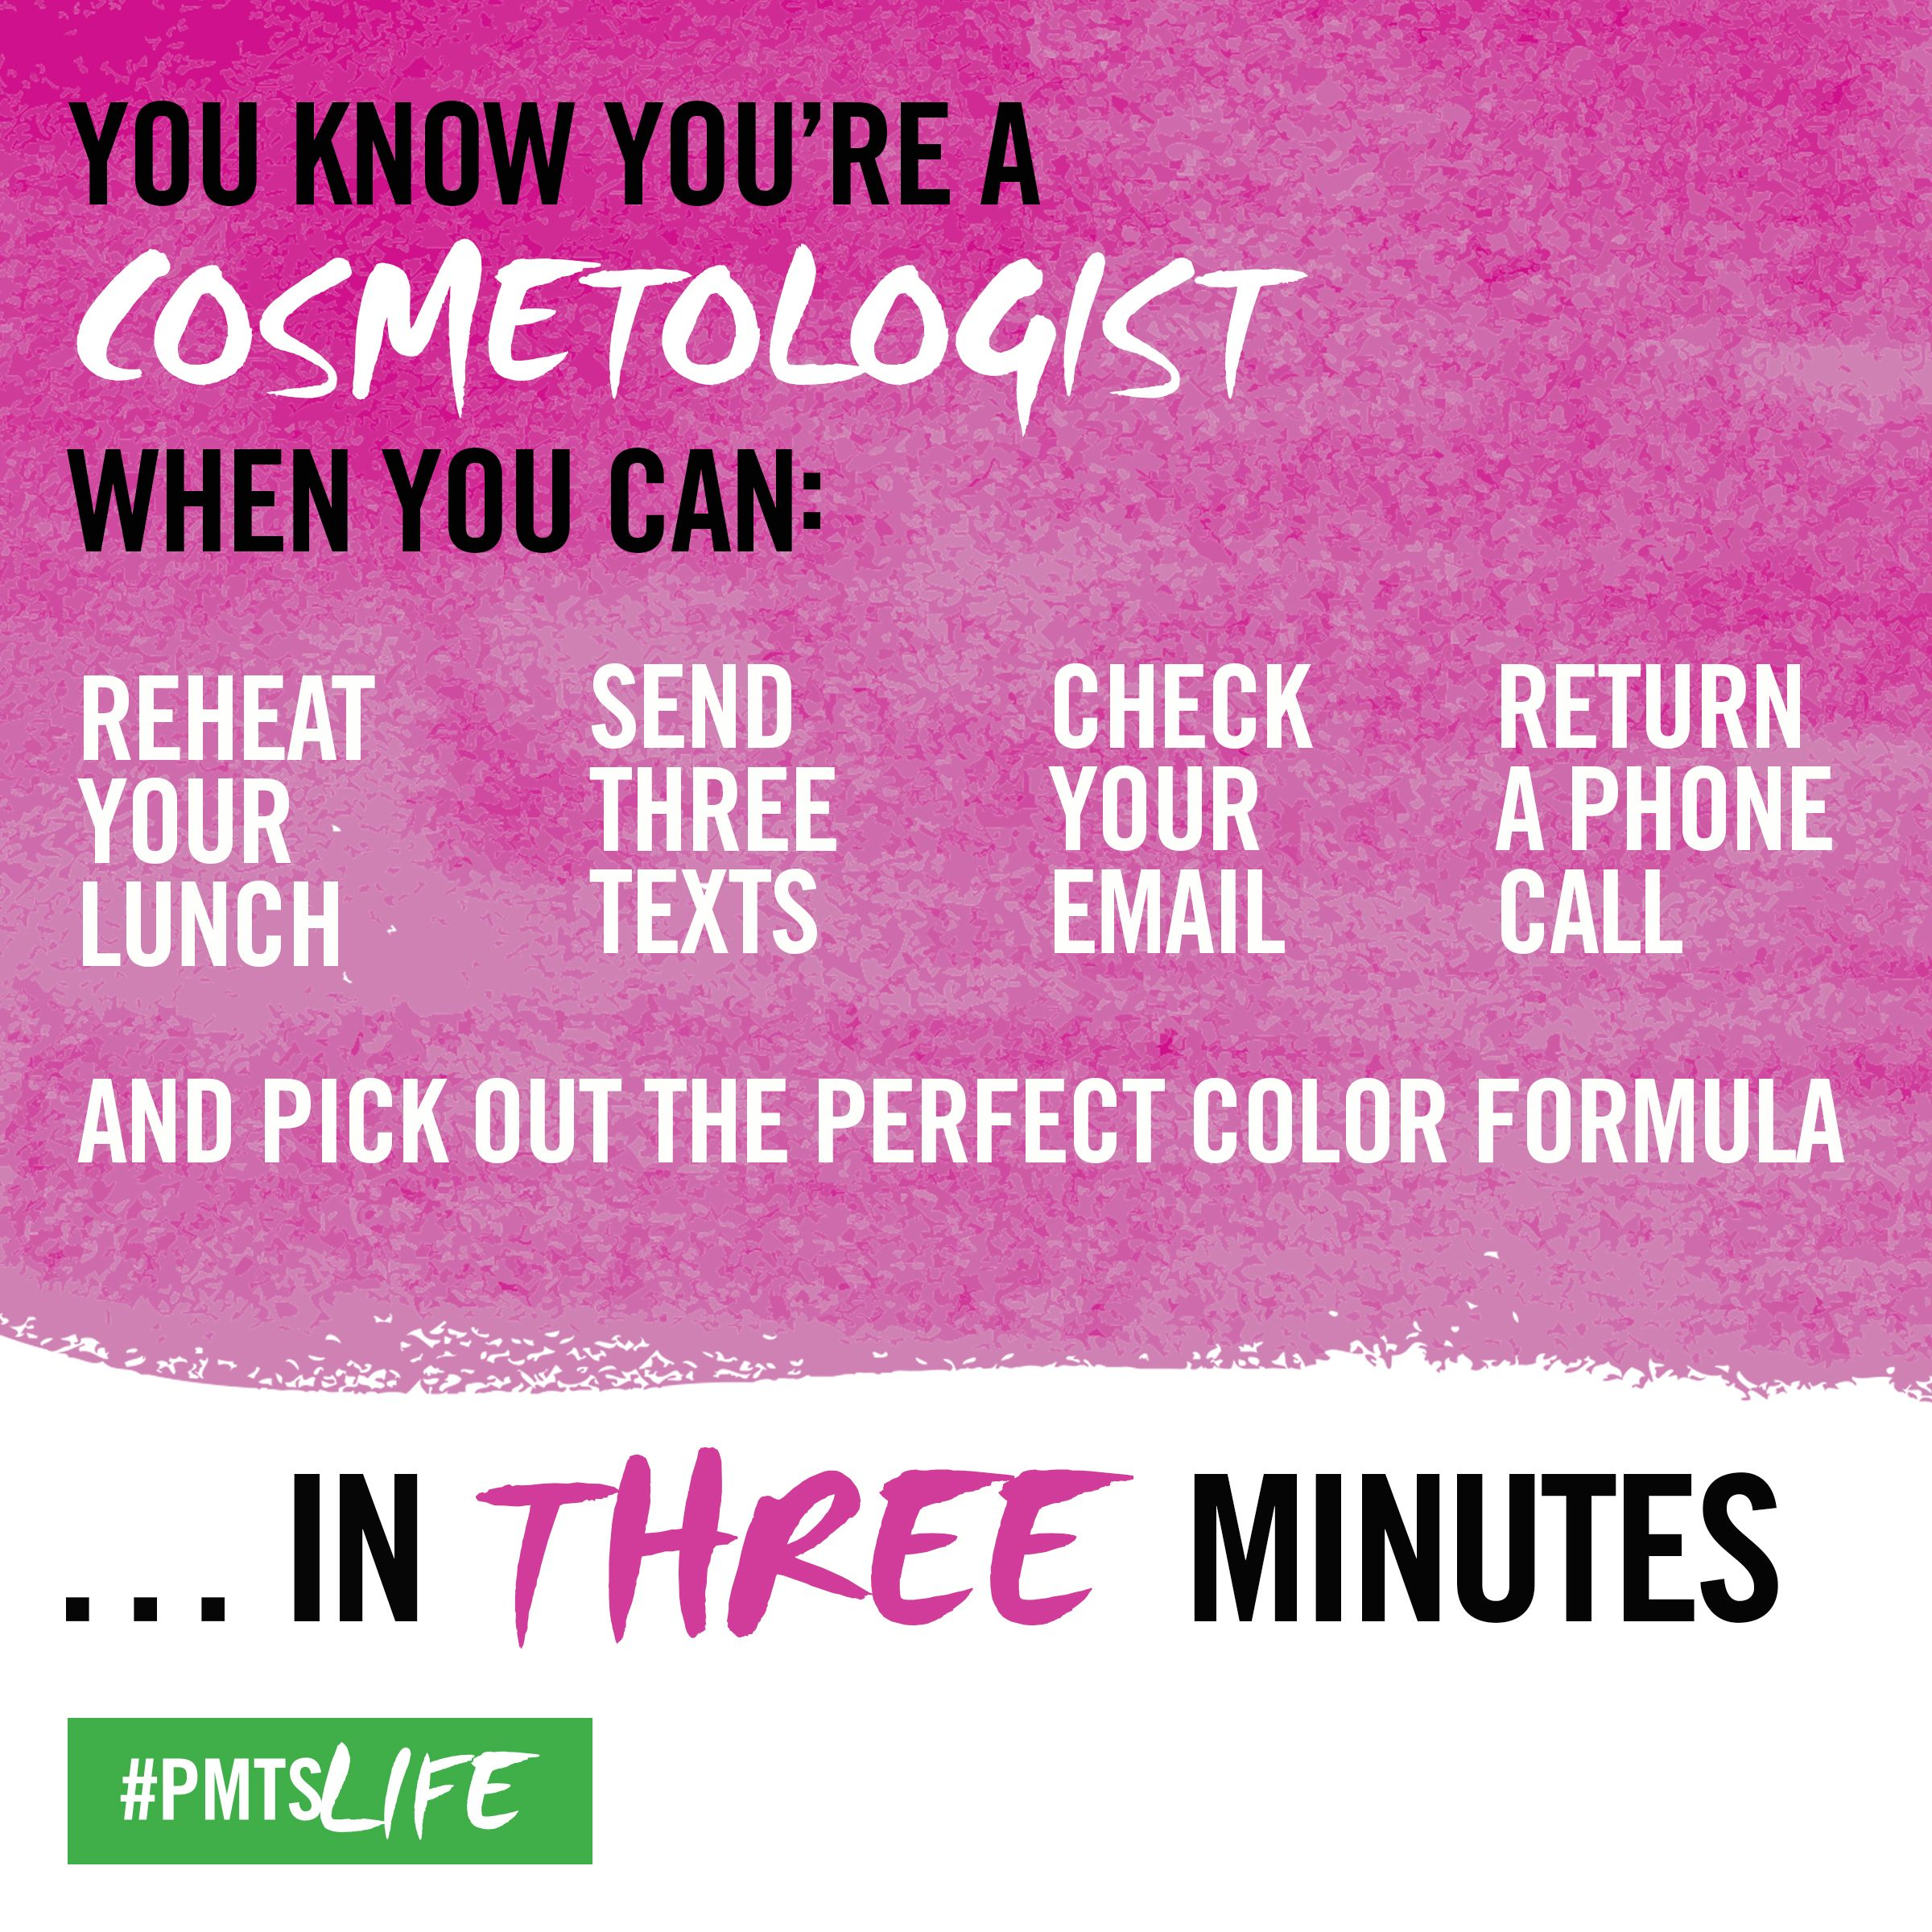 Who else can relate to this? Paul mitchell schools